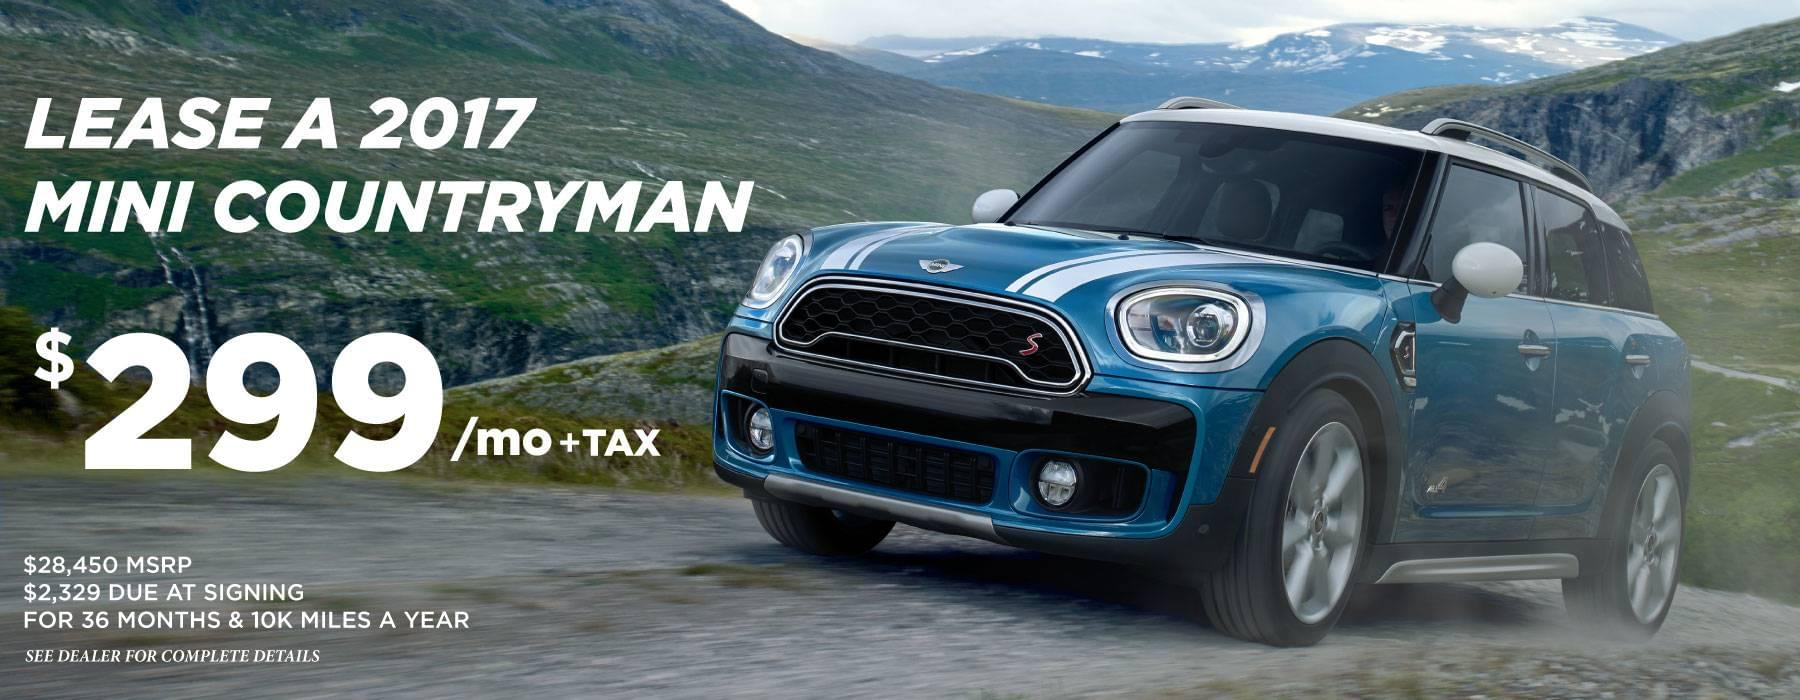 Countryman_lease